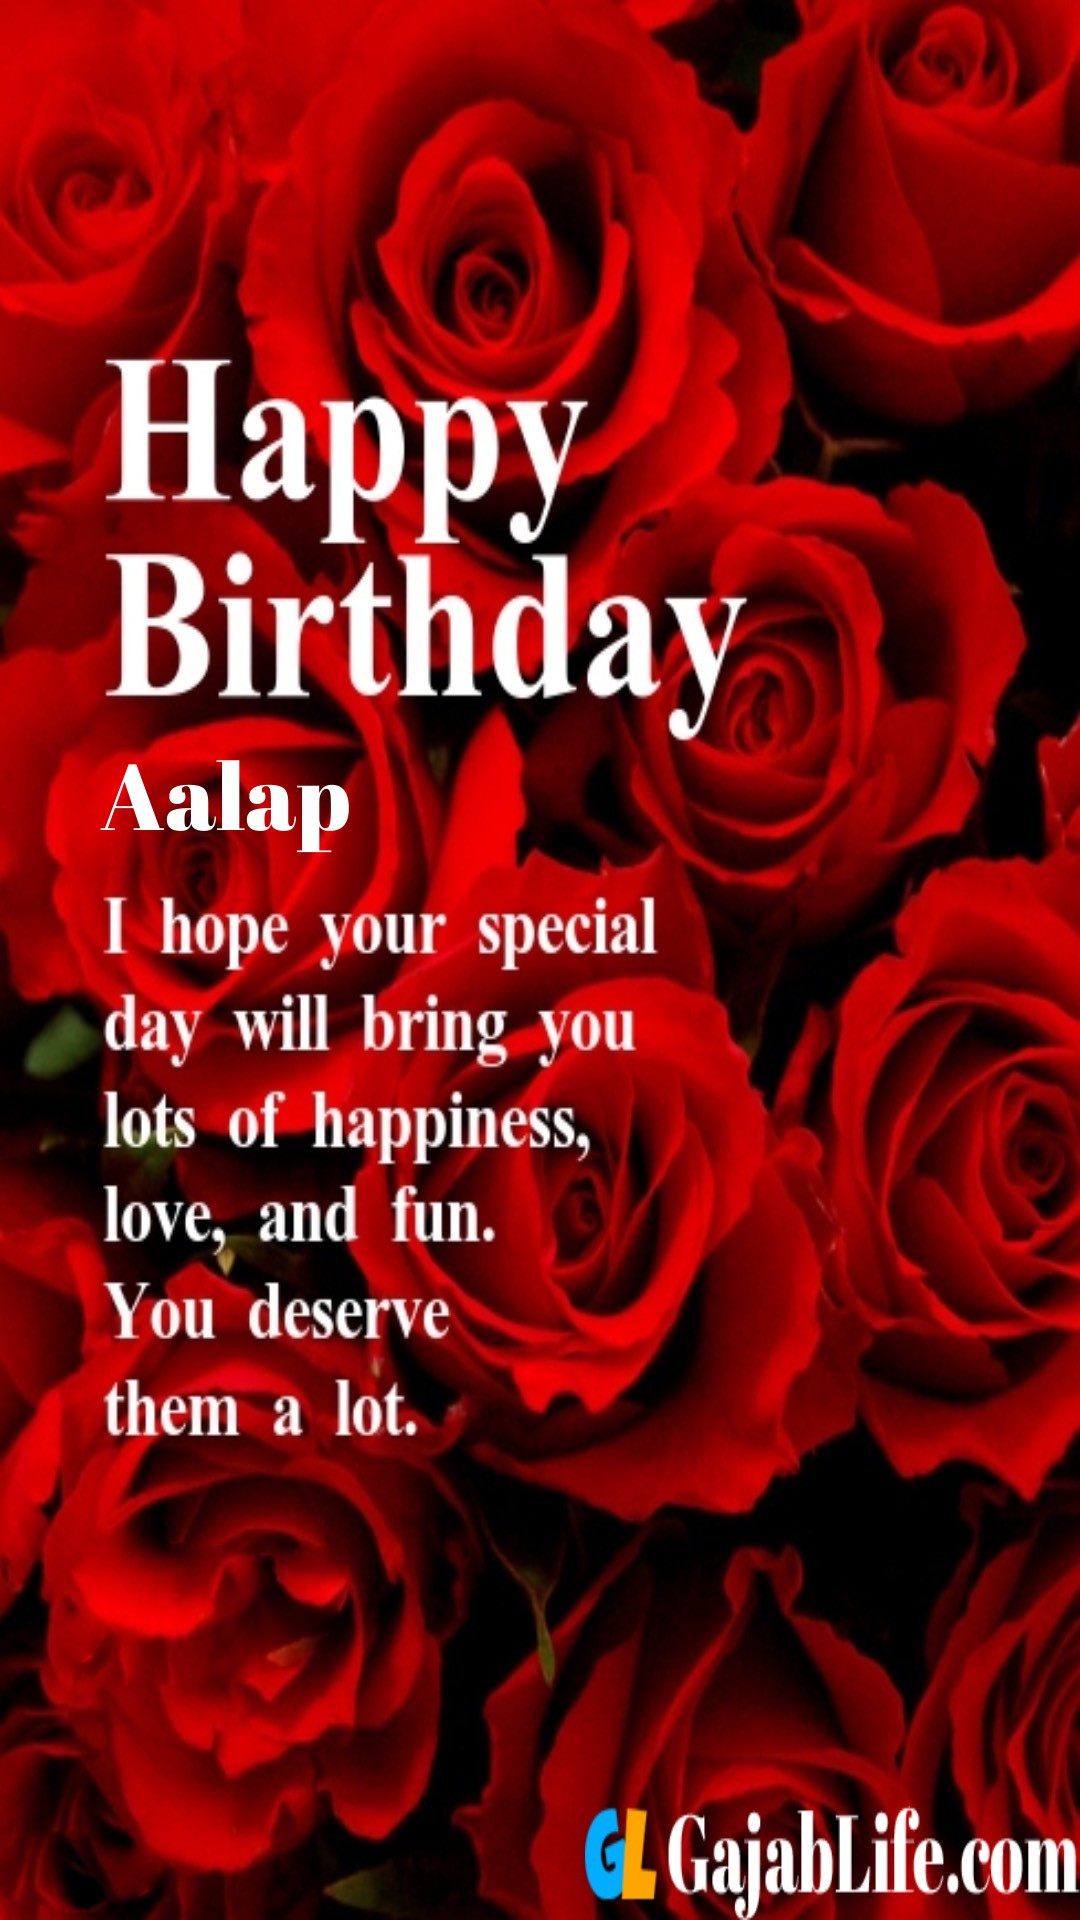 Aalap birthday greeting card with rose & love